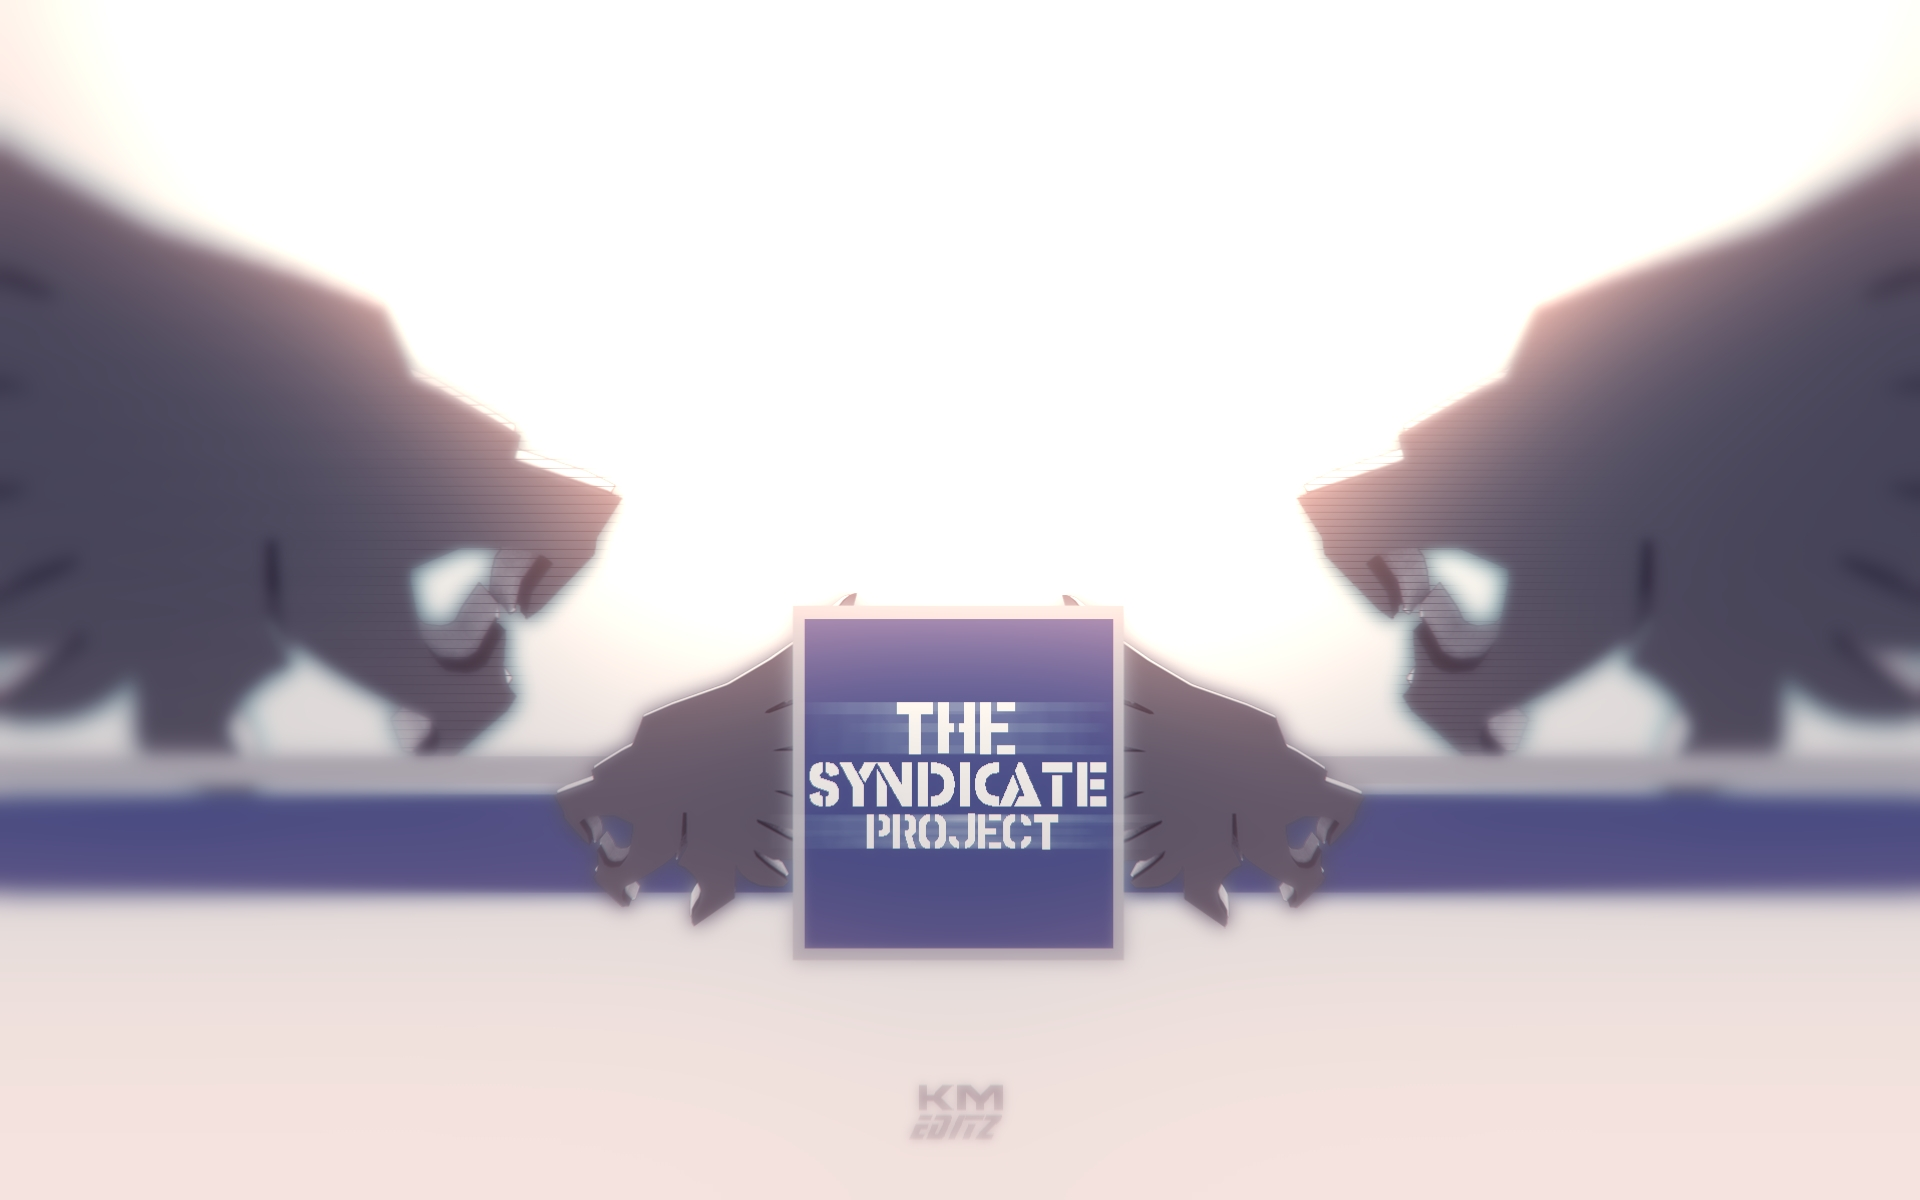 THE SYNDICATE PROJECT By KruptedMINTY